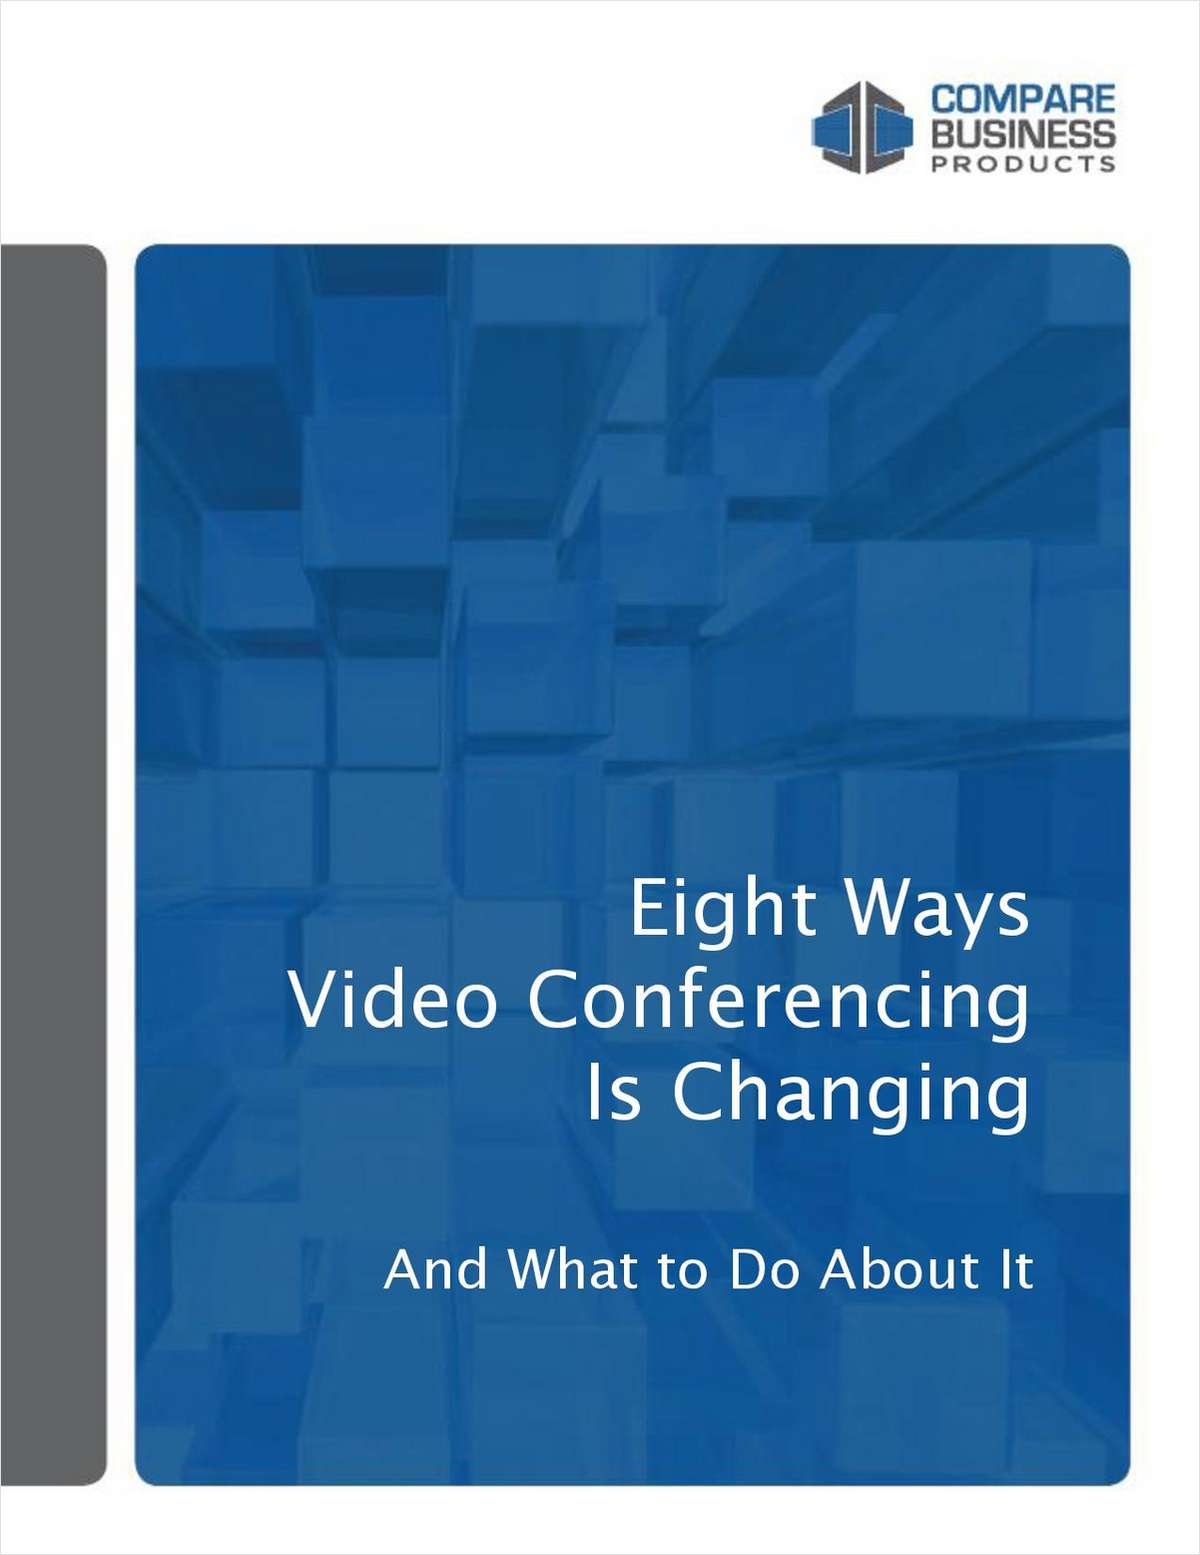 Eight Ways Video Conferencing is Changing